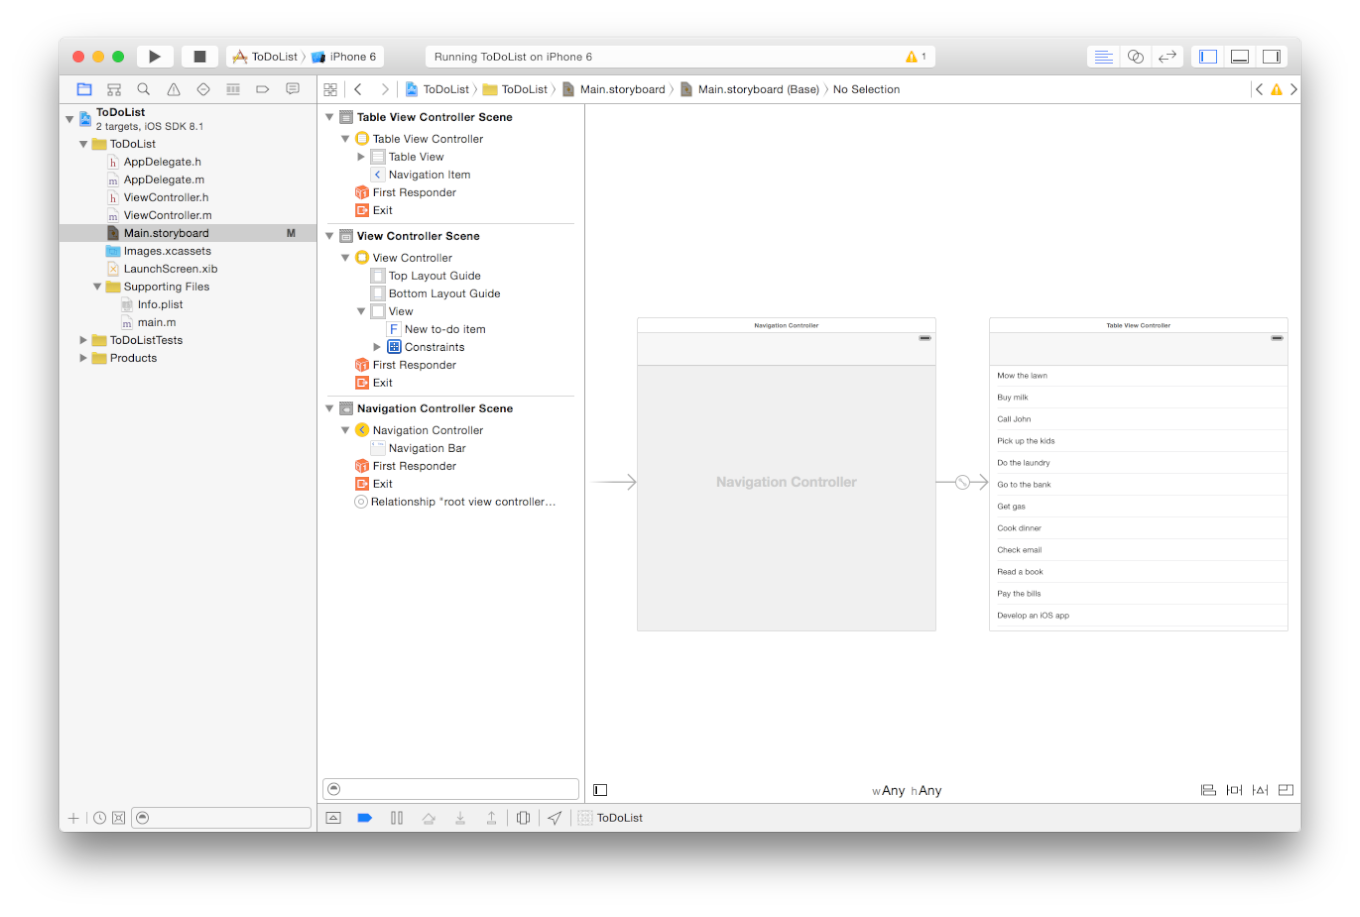 Tutorial: Storyboards Add a Segue to Navigate Forward Xcode adds a new navigation controller to your storyboard, sets the storyboard entry point to it, and creates a relationship between the new